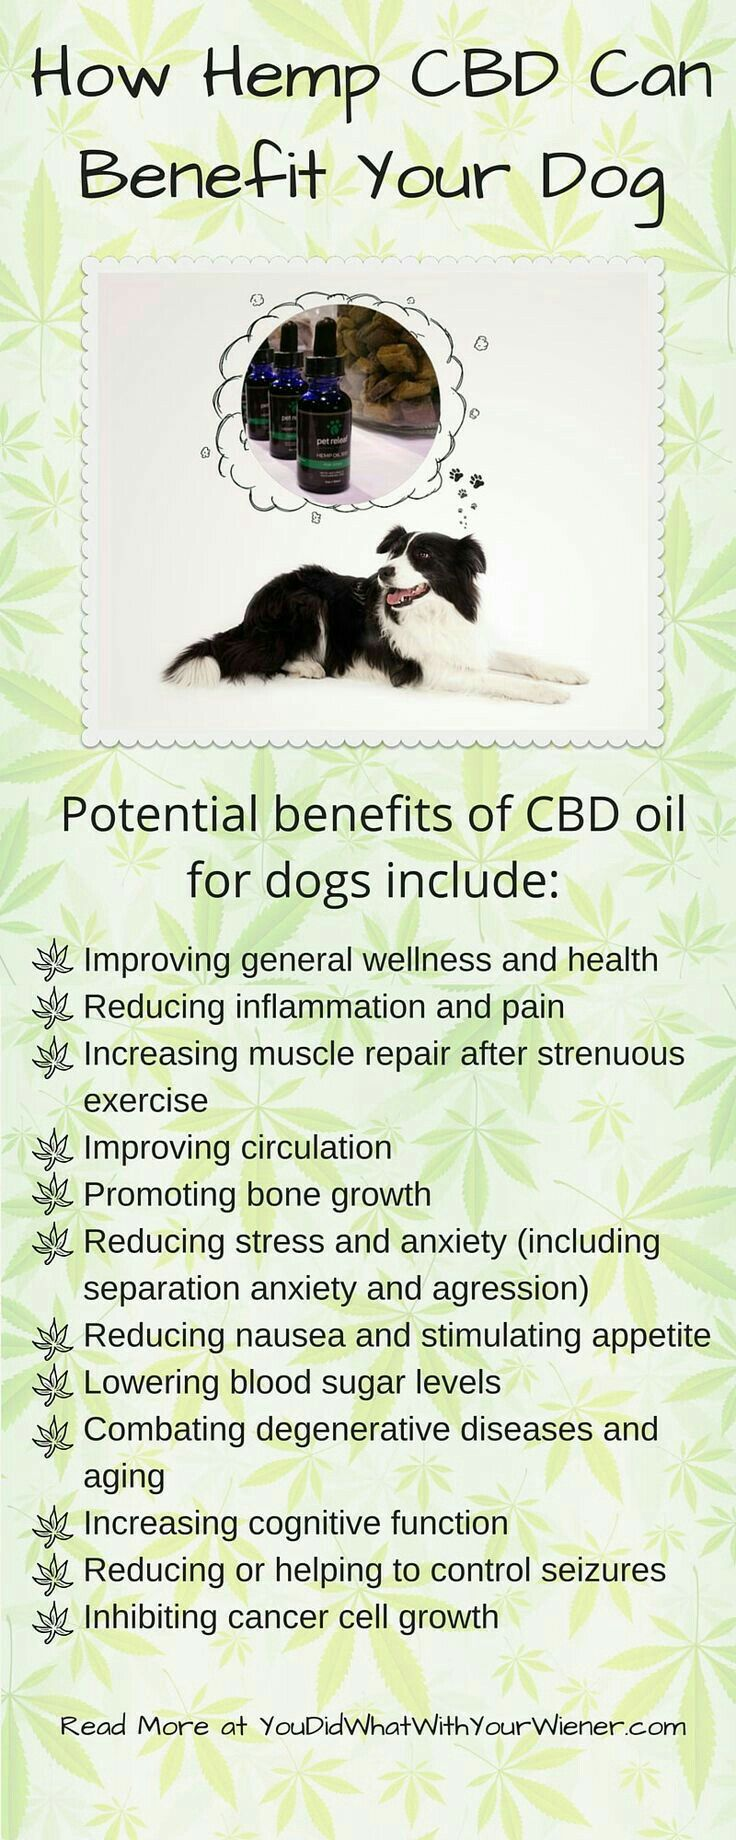 2143 best 1cure4cancer images on pinterest cannabis healthy hemp cbd oil and treats are all the rage can cbd benefit your dog nvjuhfo Choice Image